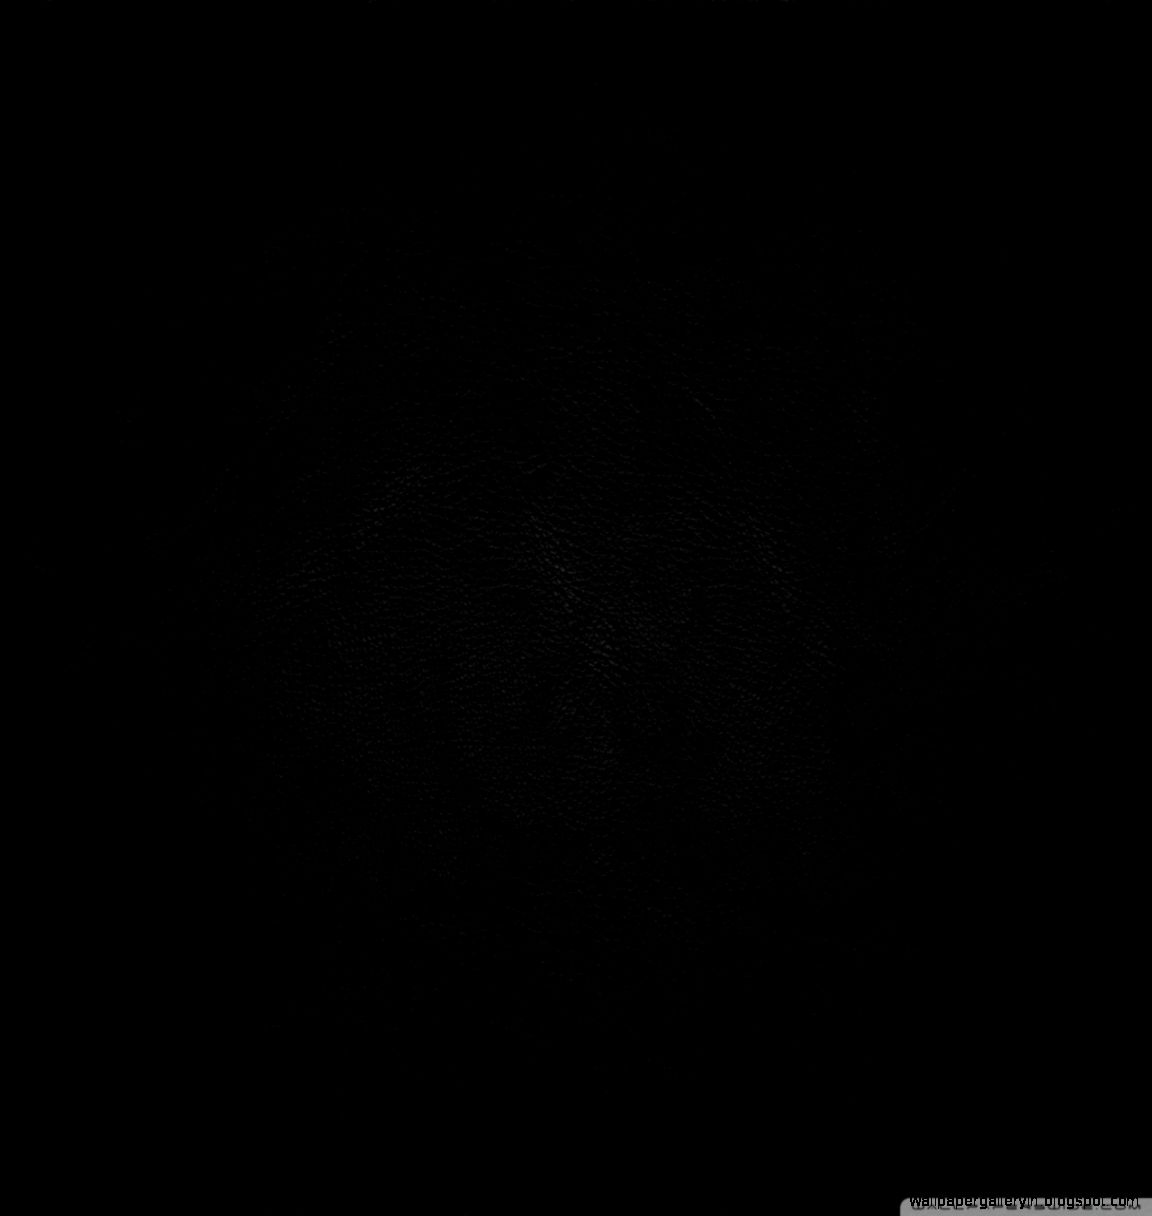 Black wallpaper android wallpaper gallery - Black wallpaper for android download ...